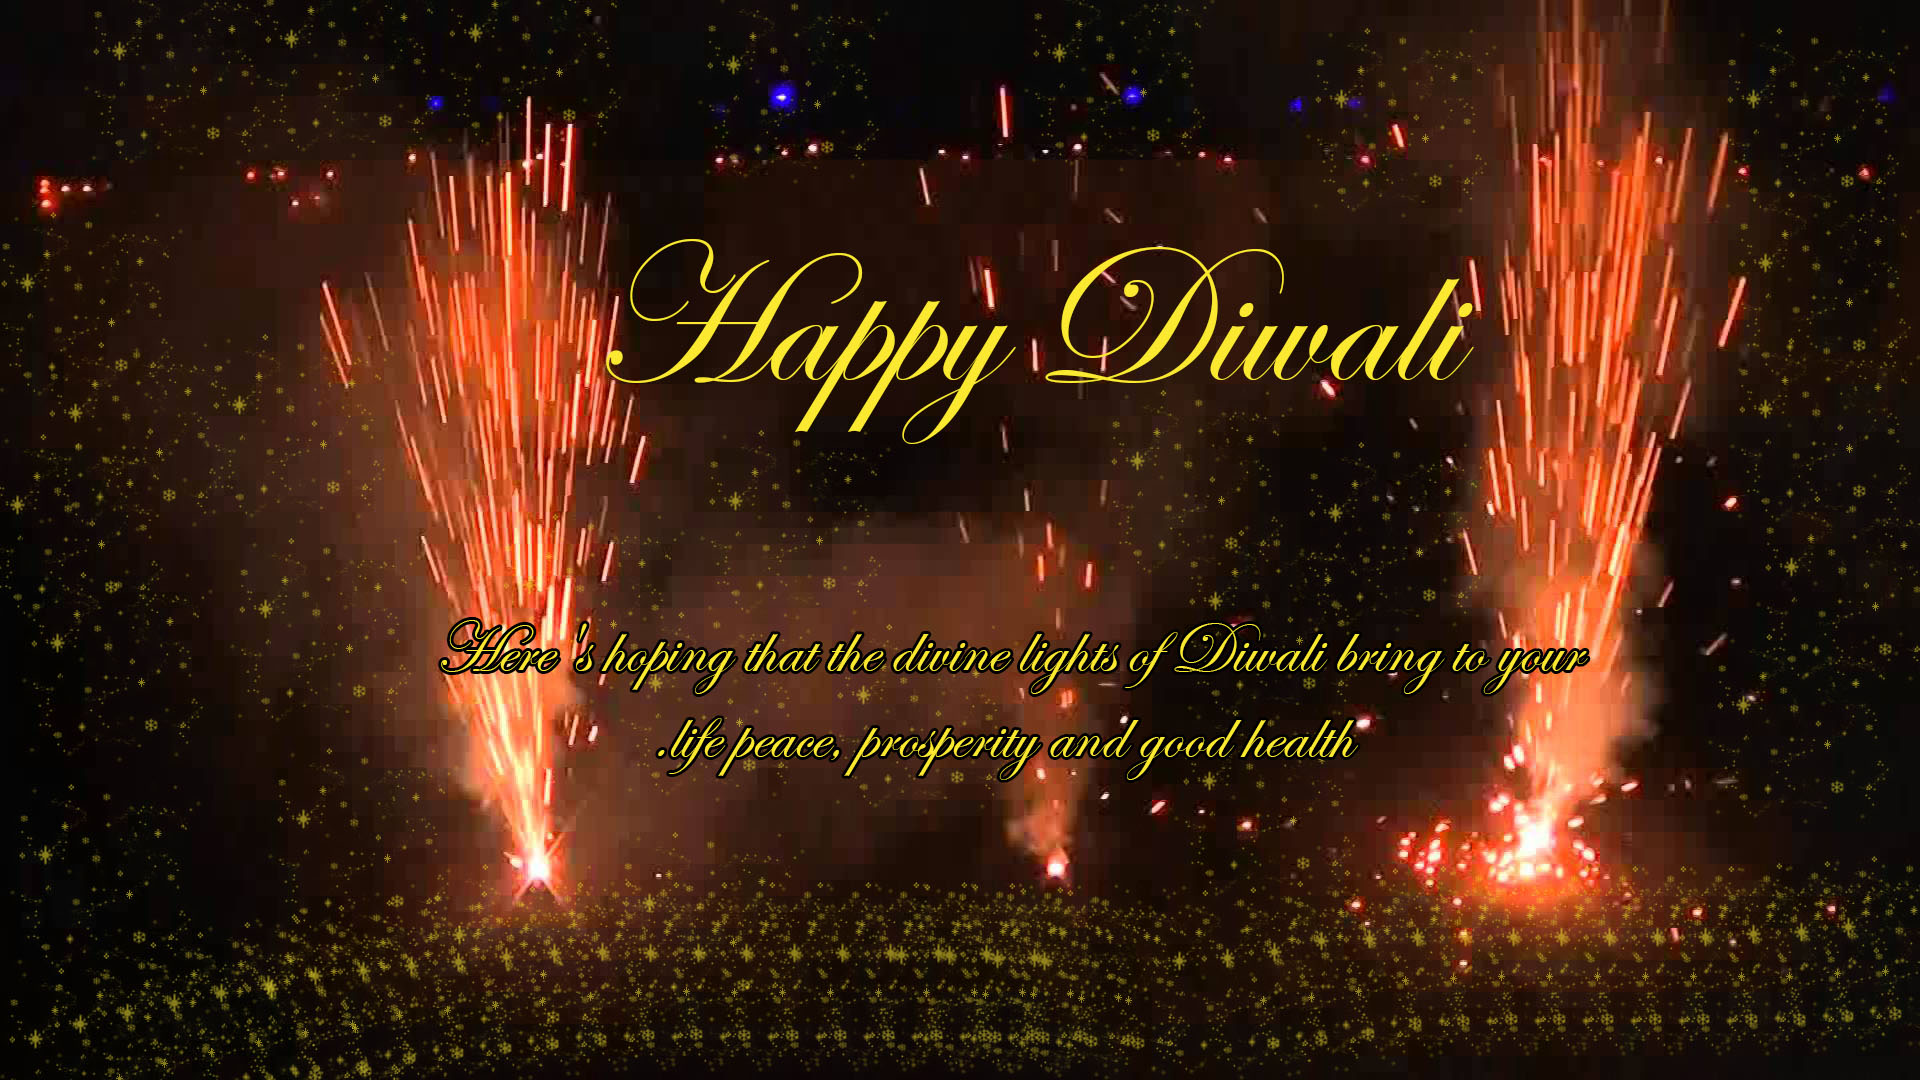 happy-diwali-2017-images-wallpapers-wishes-quotes